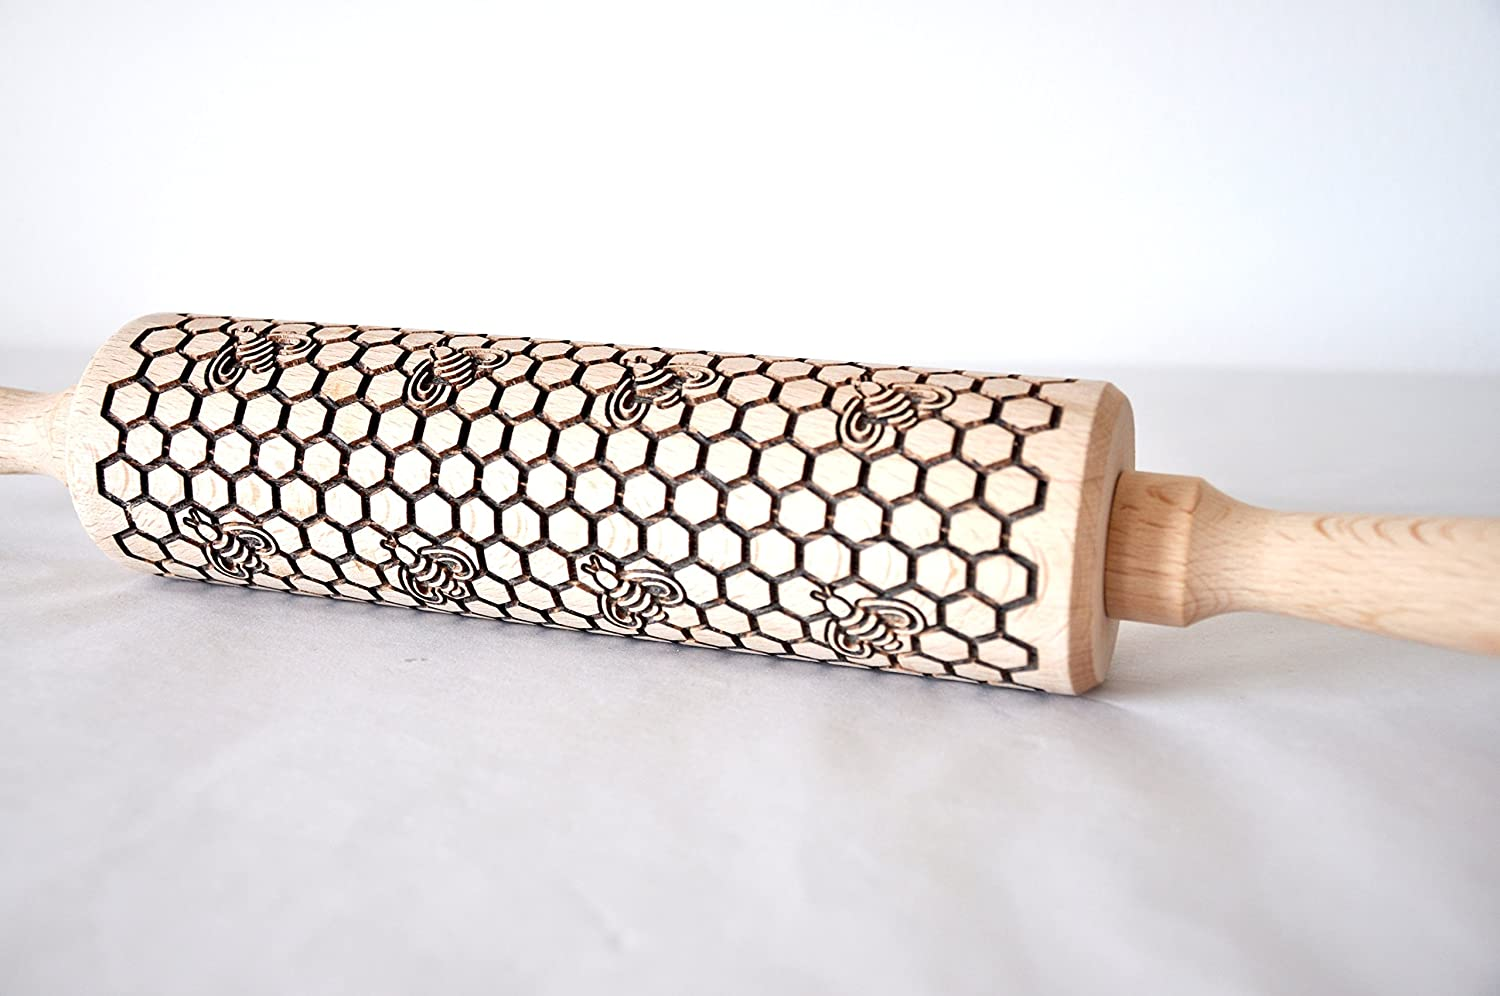 Engraved Honey Bees Pattern Rolling Pin